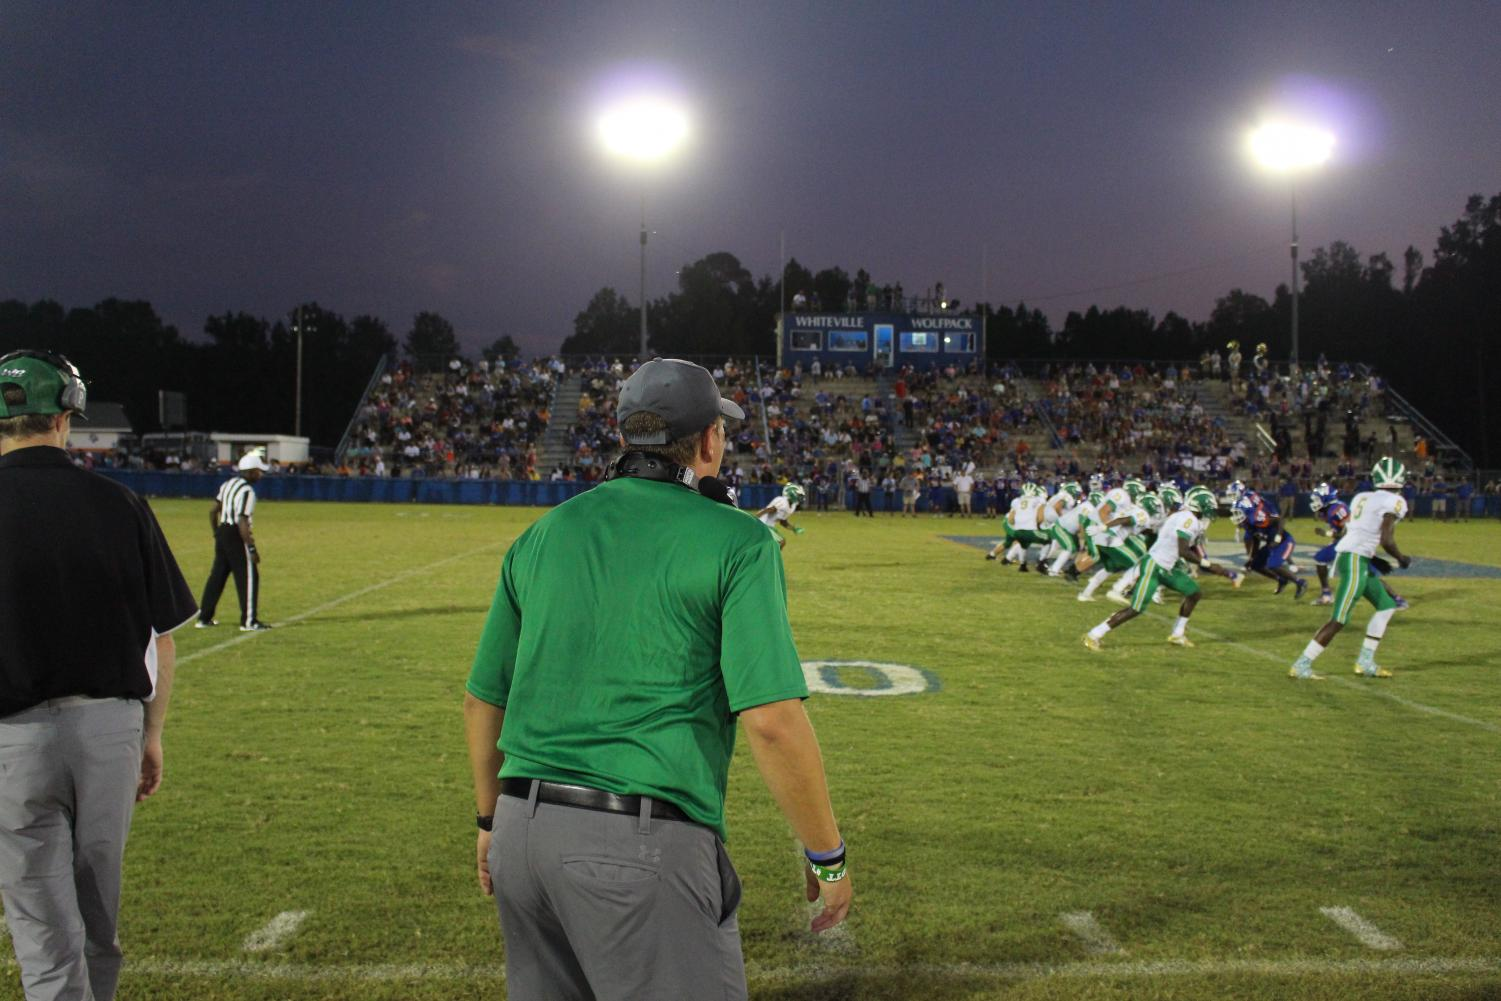 Coach+Hickman+yells+onto+the+field+as+the+trojans+are+on+offense